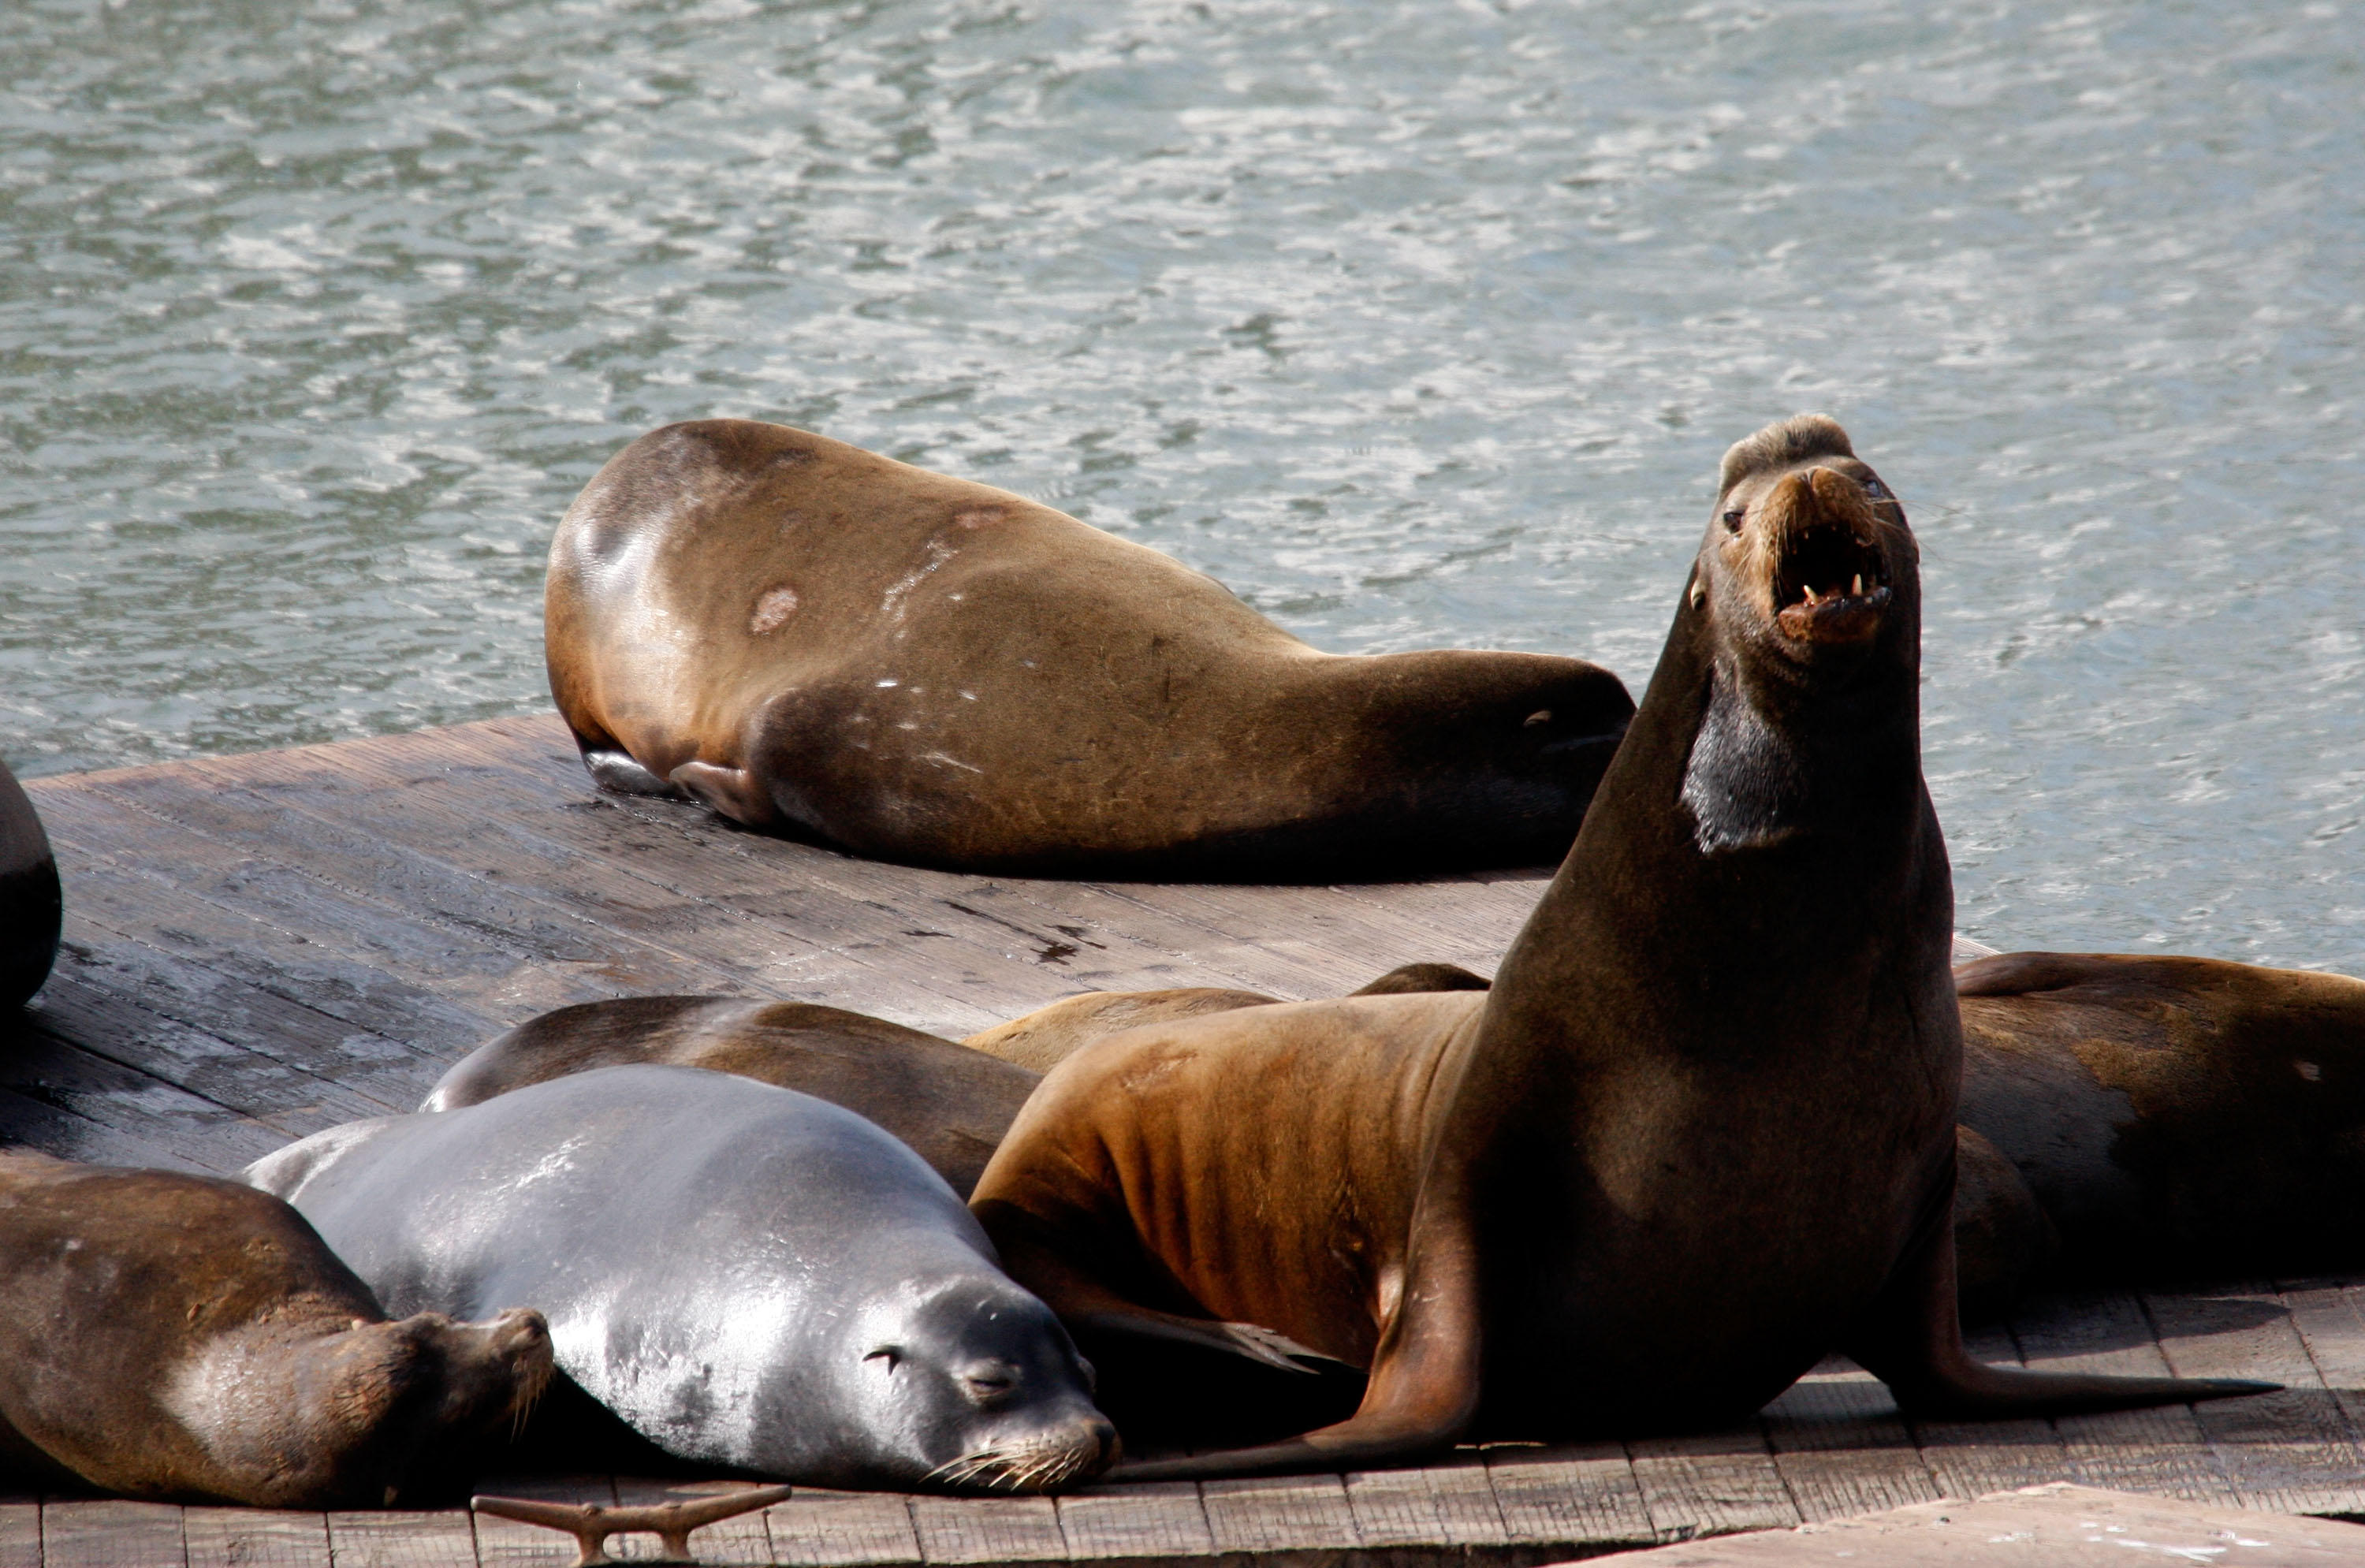 Second sea lion attack in 24 hours in San Francisco Bay